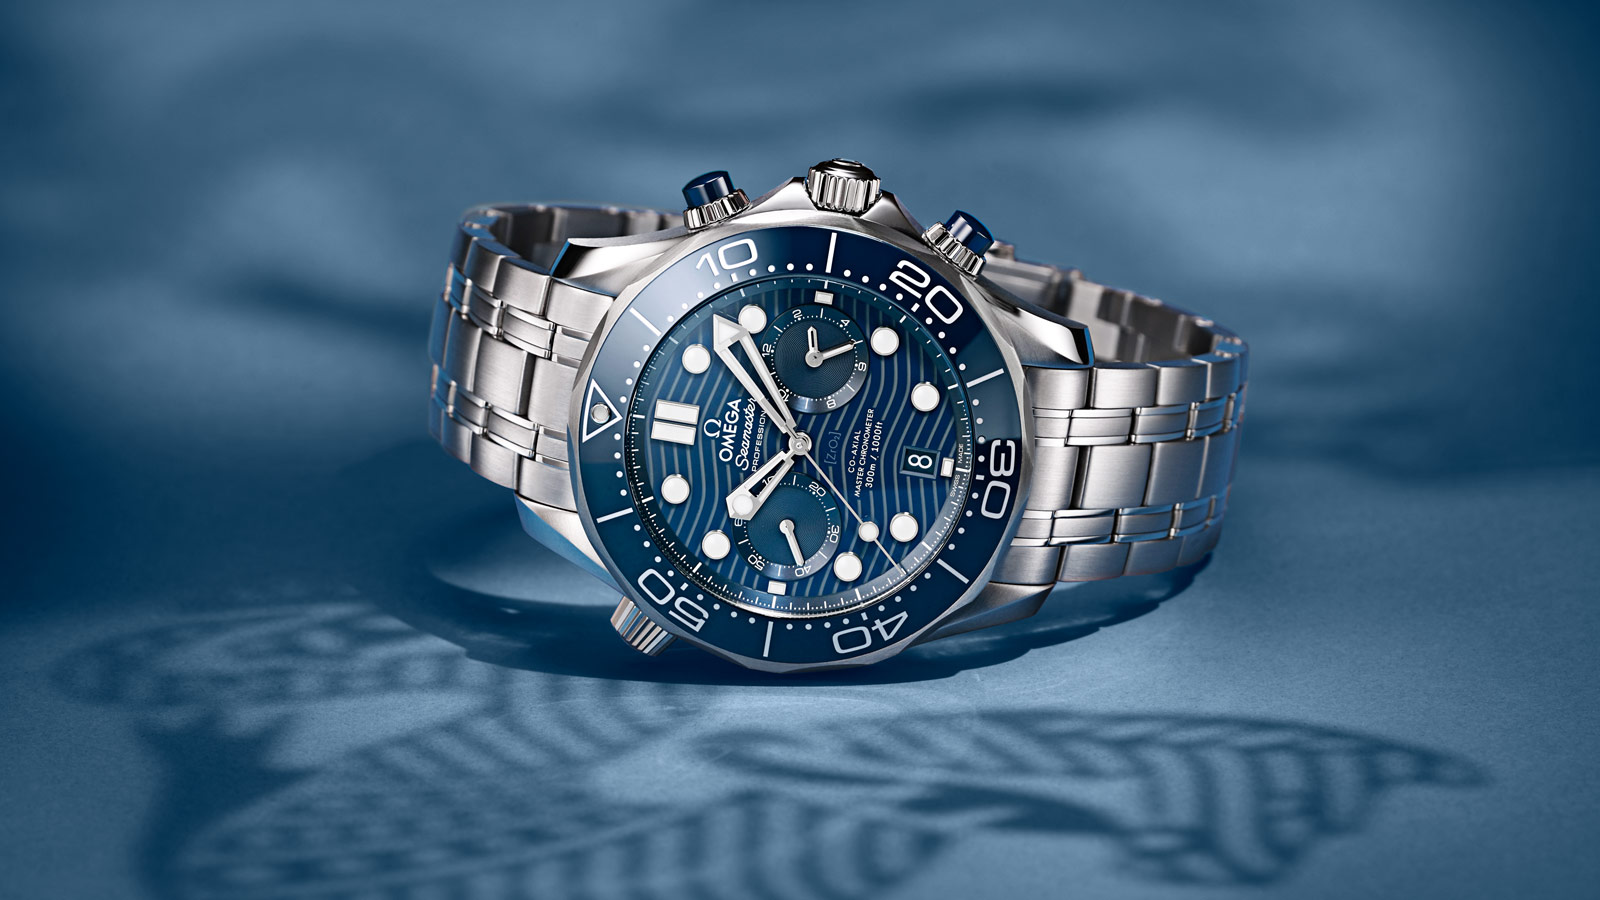 Seamaster ダイバー 300M Diver 300M Omega Co‑Axial Master Chronometer Chronograph 44 mm ウォッチ - 210.30.44.51.03.001